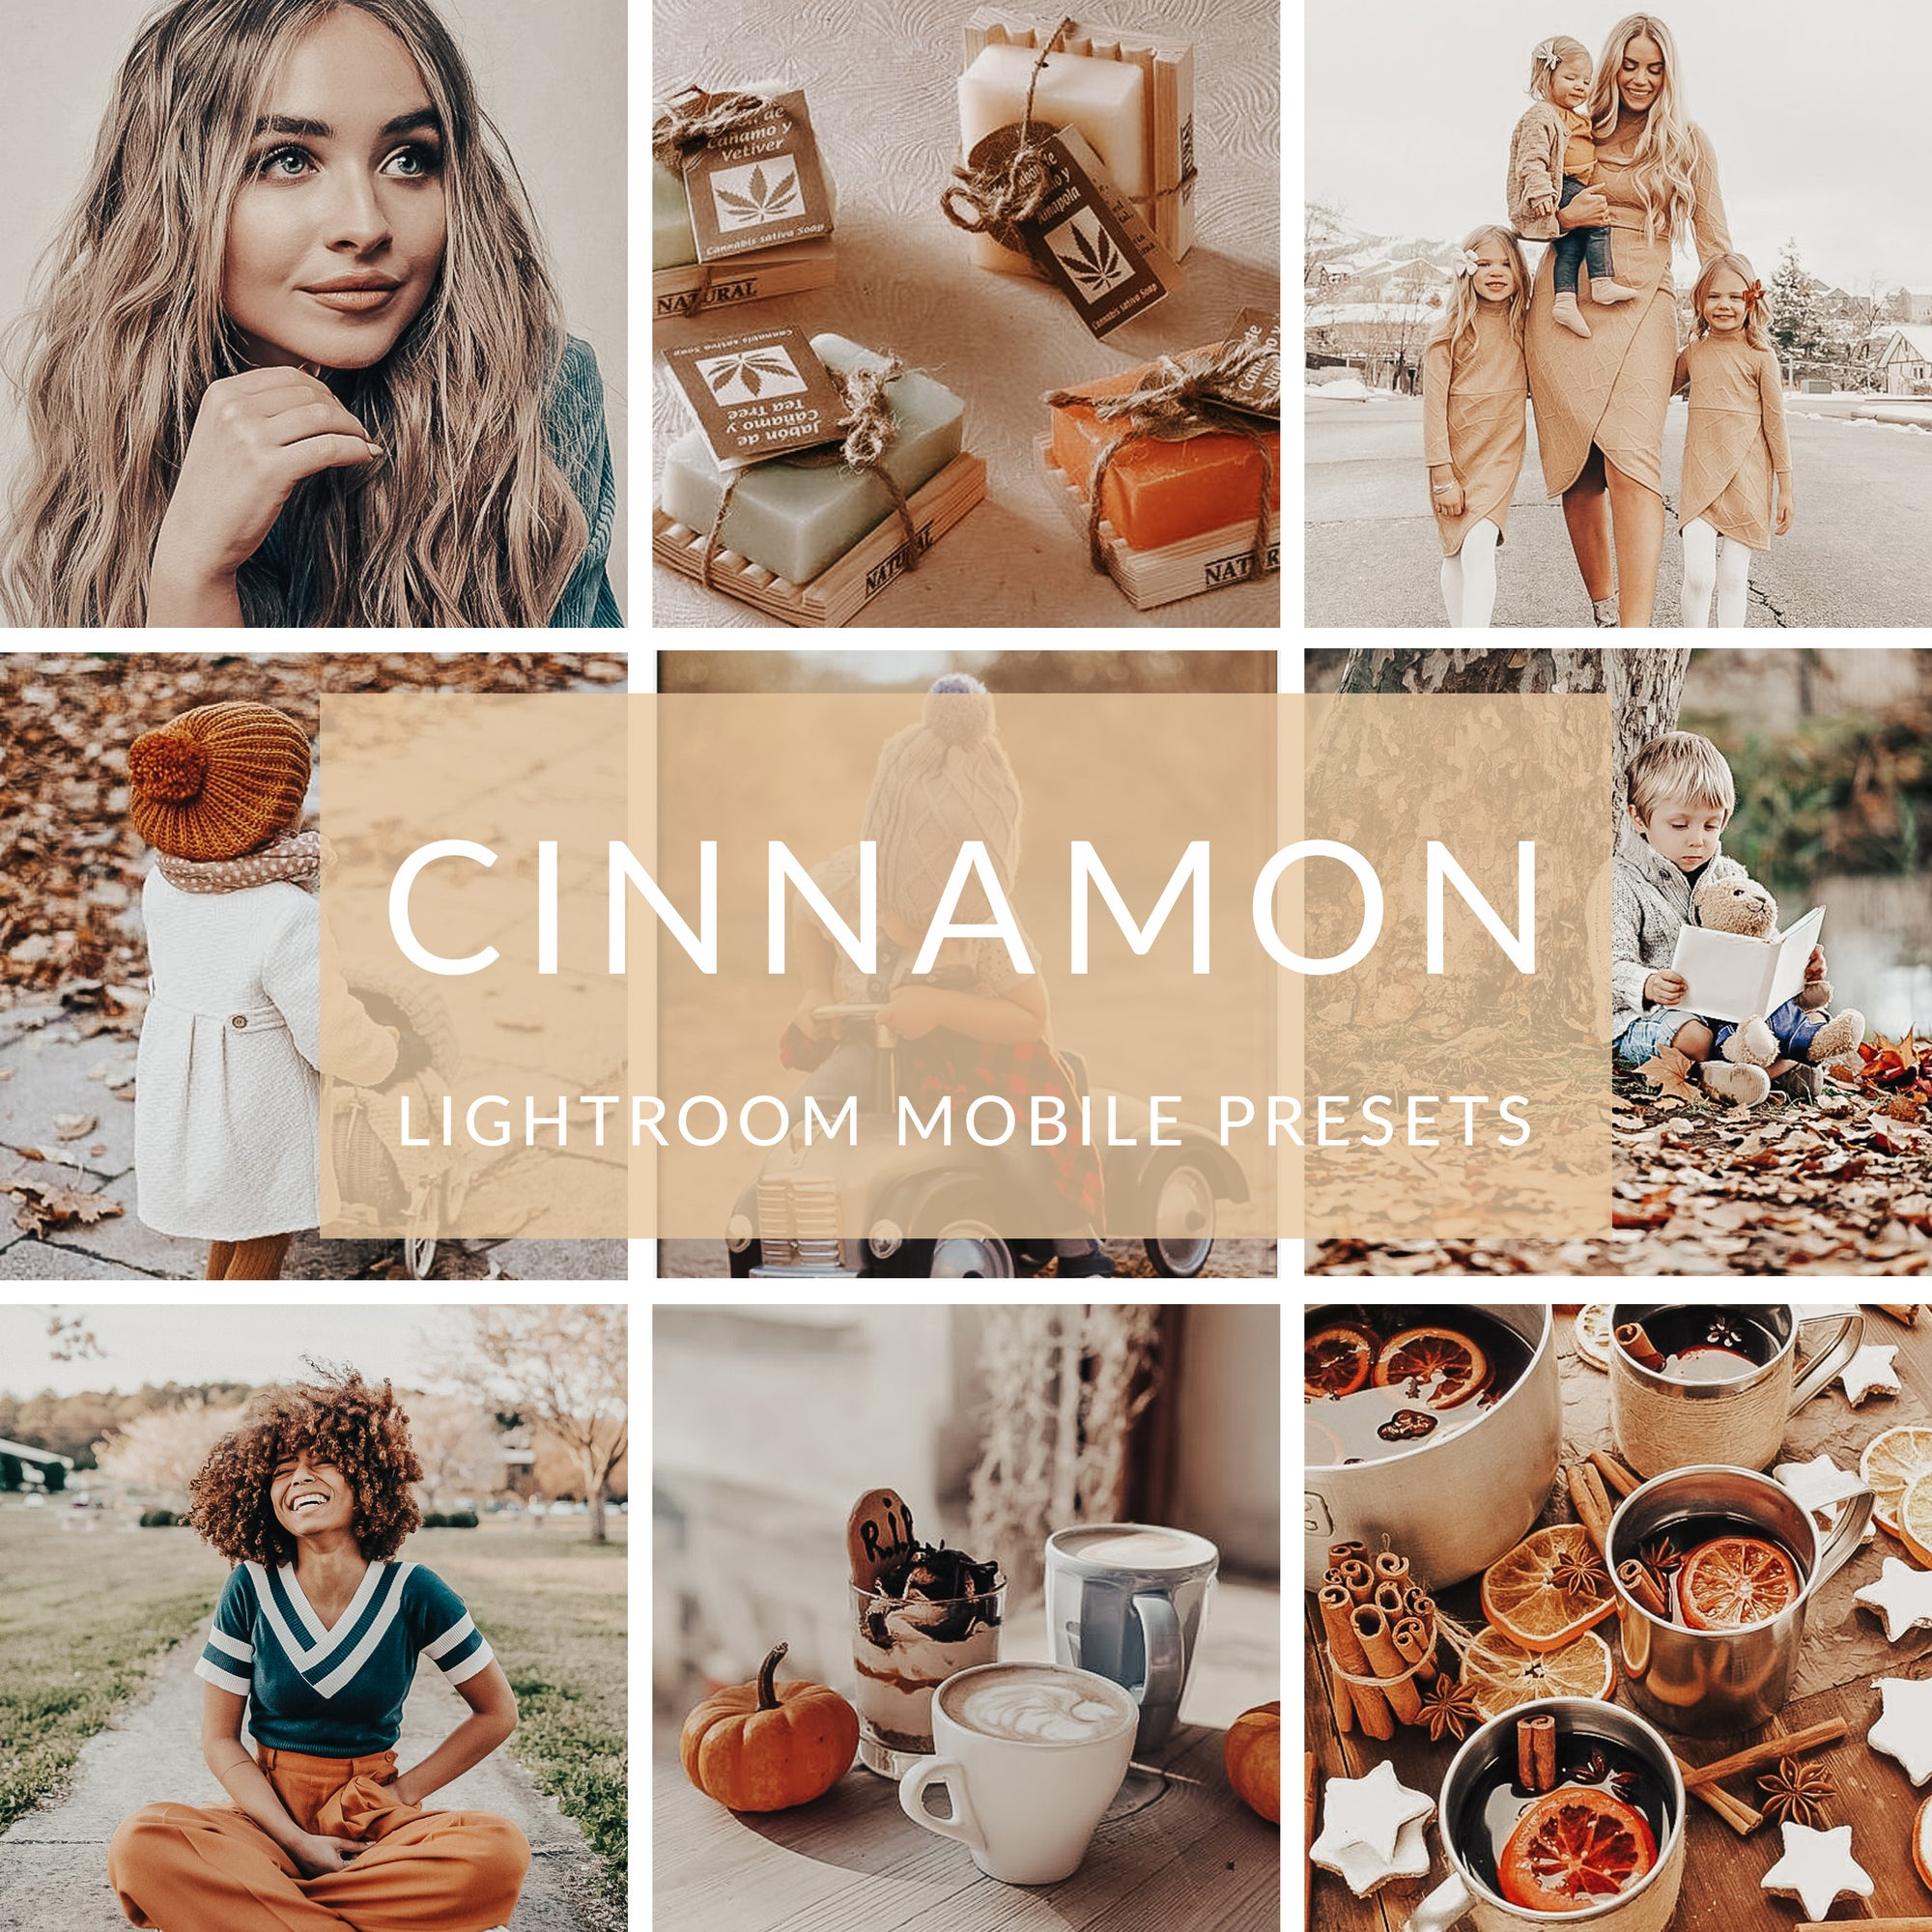 Cinnamon Lightroom Mobile Presets